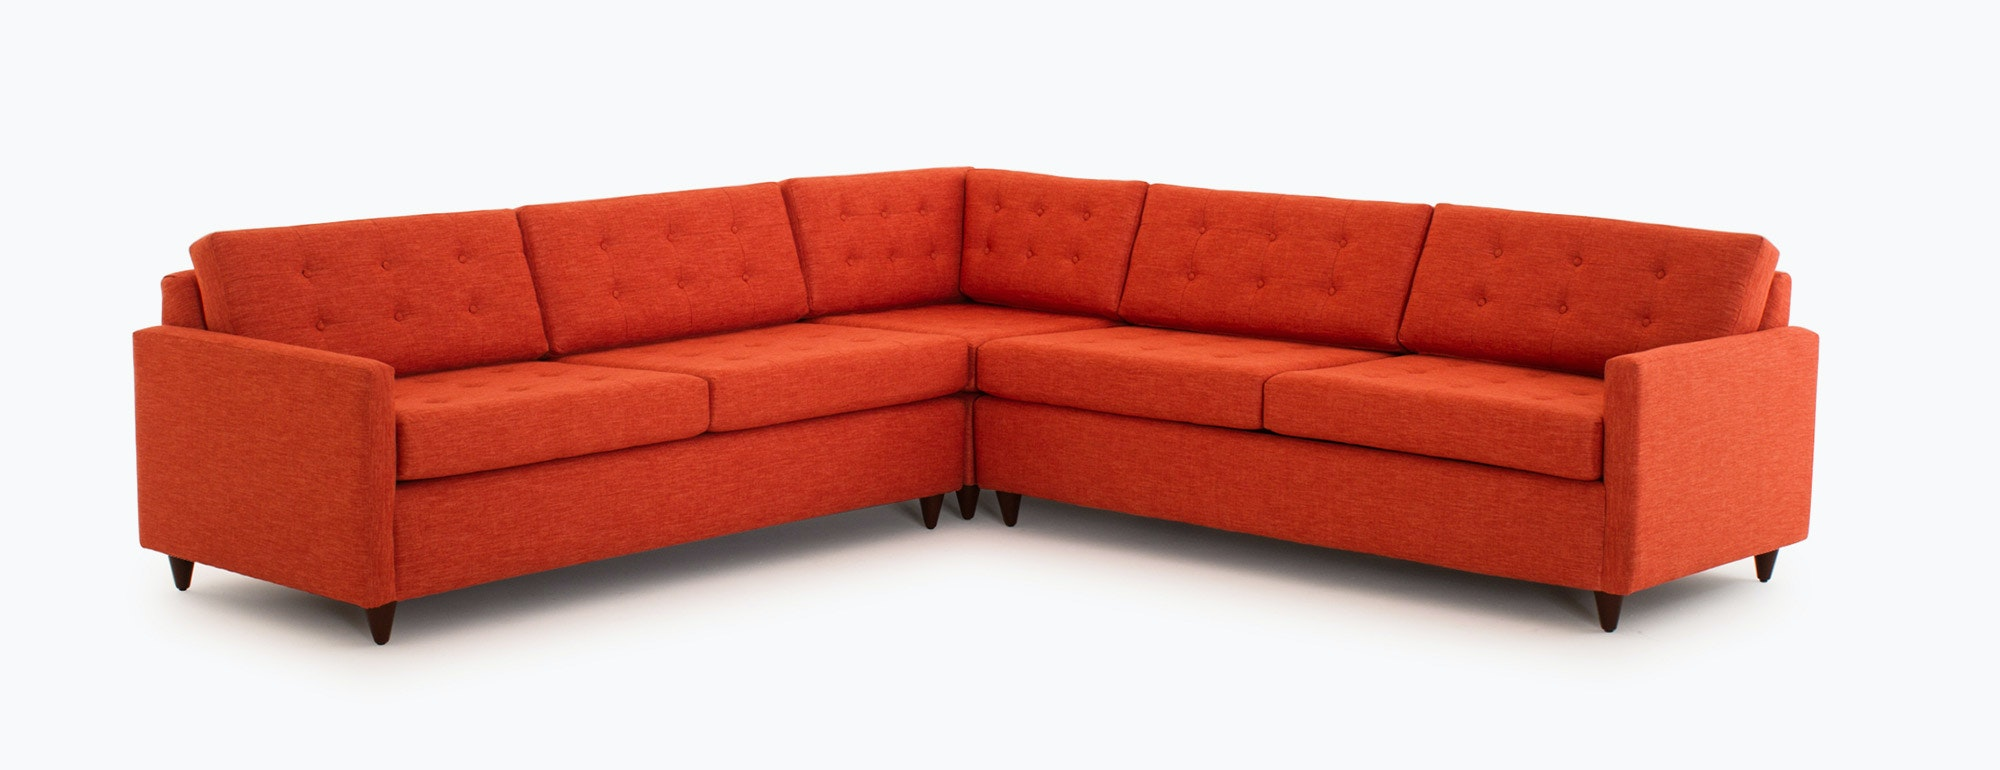 Eliot Corner Sectional Sleeper Joybird